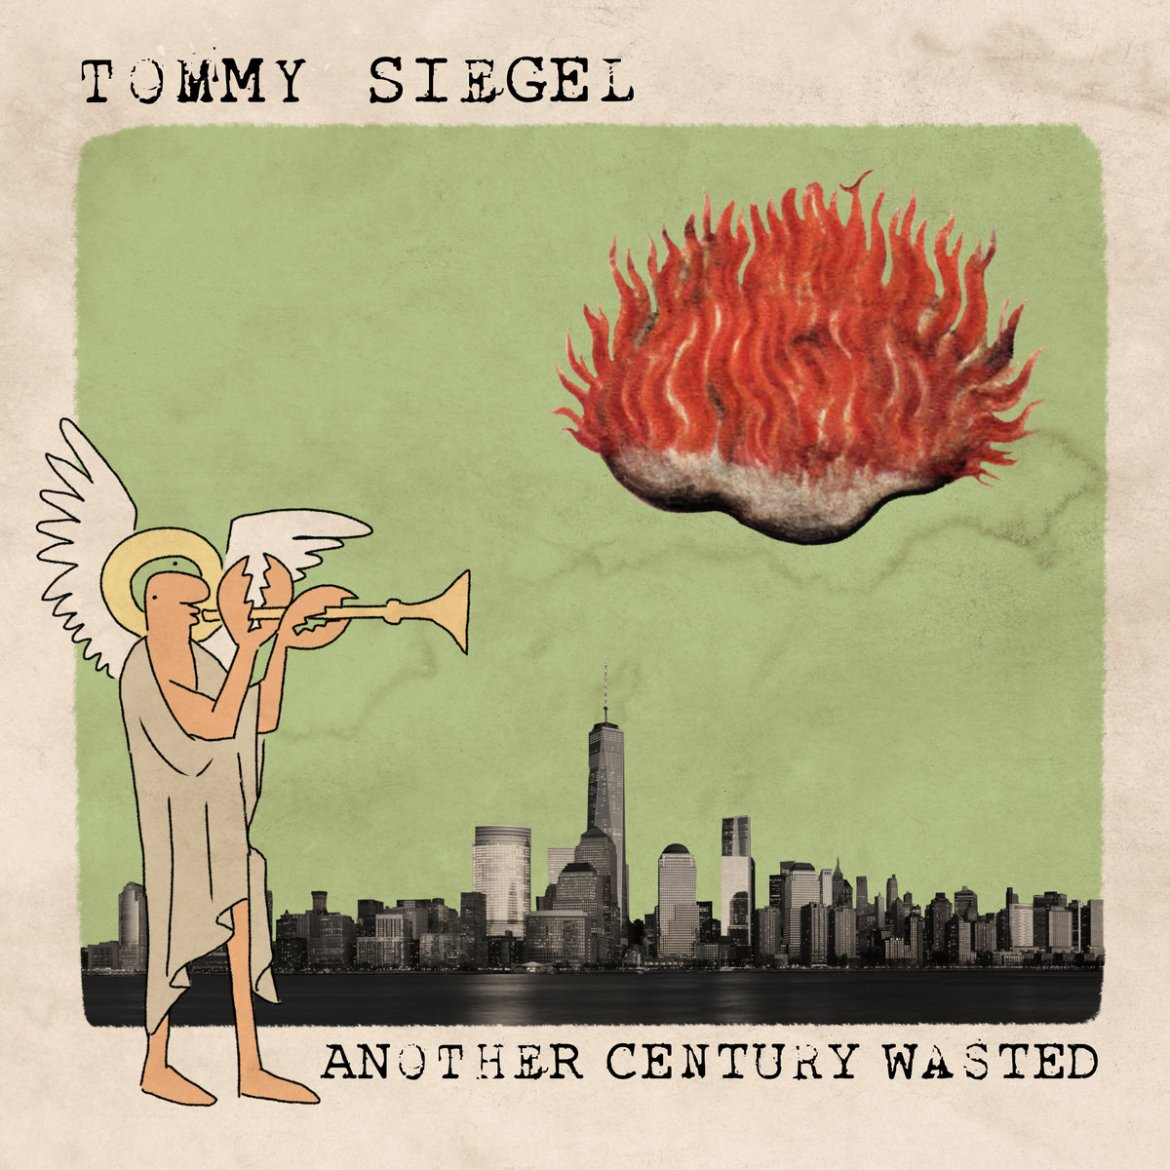 Tommy Siegel's album cover.